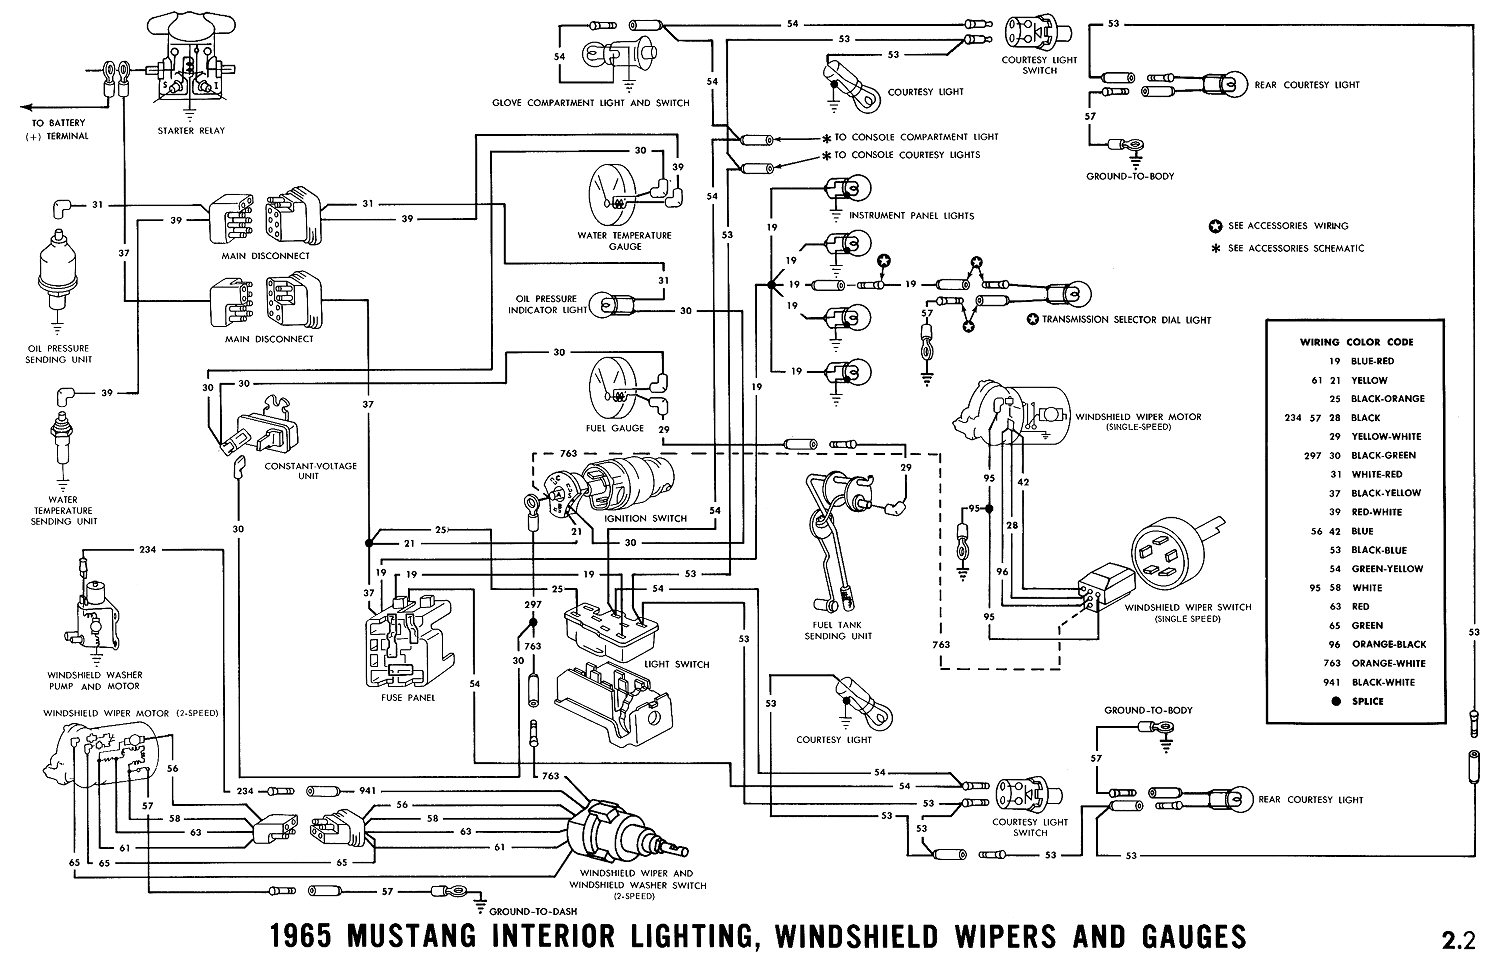 1966 Ford Mustang Ignition Wiring Diagram Trusted Schematics Electronic 1965 Diagrams Average Joe Restoration Mopar